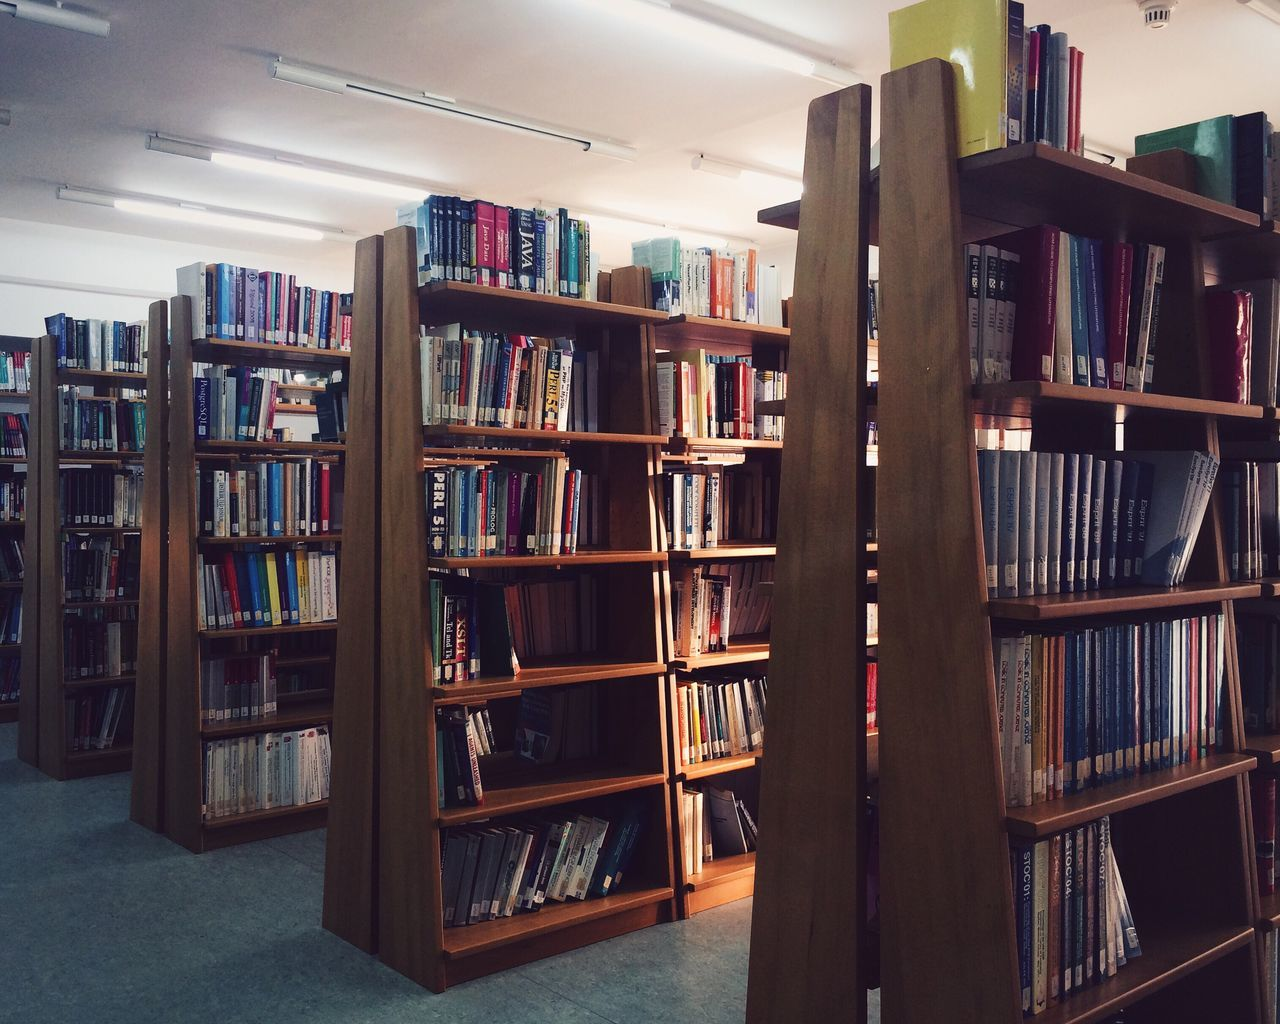 Book Bookshelf Library Education Shelf Learning Literature Large Group Of Objects Wisdom In A Row Arrangement Collection Choice Intelligence Bookstore Indoors  No People High School Building Day